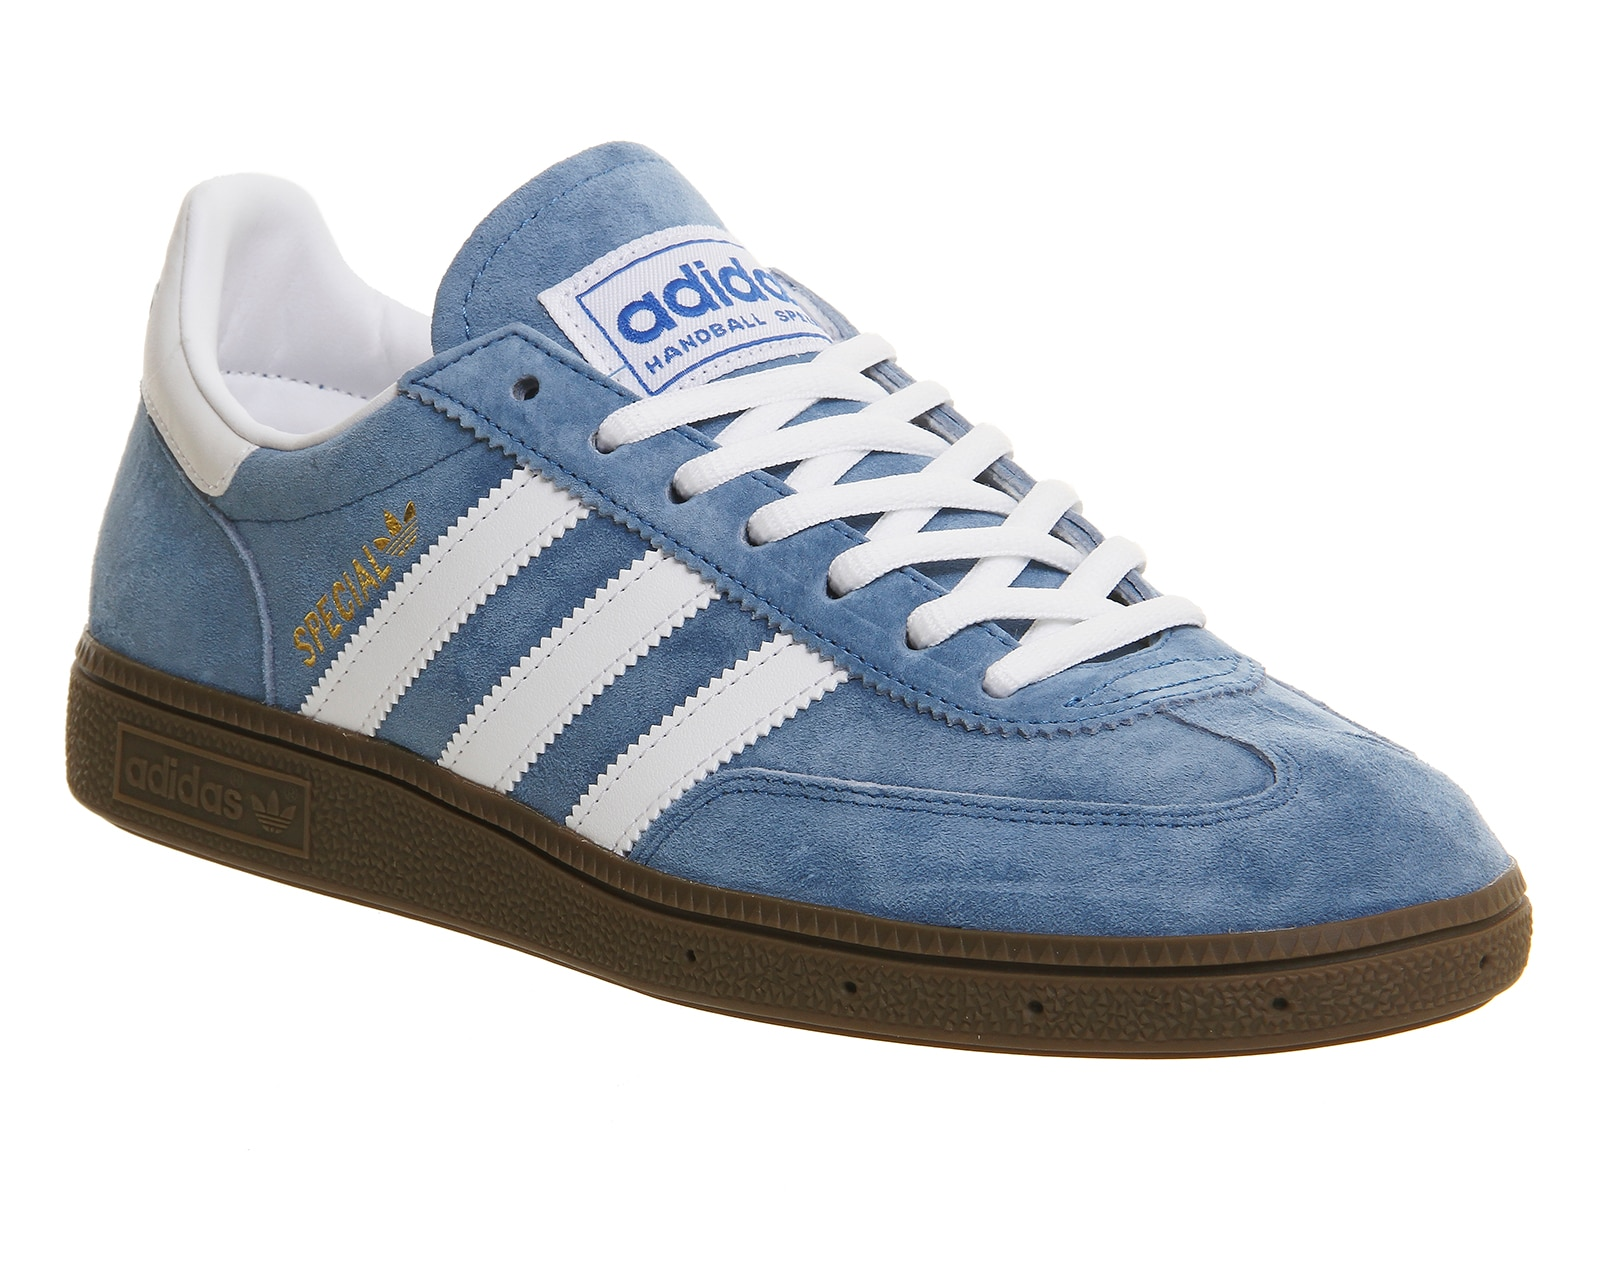 adidas handball spezial blue running white trainers shoes. Black Bedroom Furniture Sets. Home Design Ideas